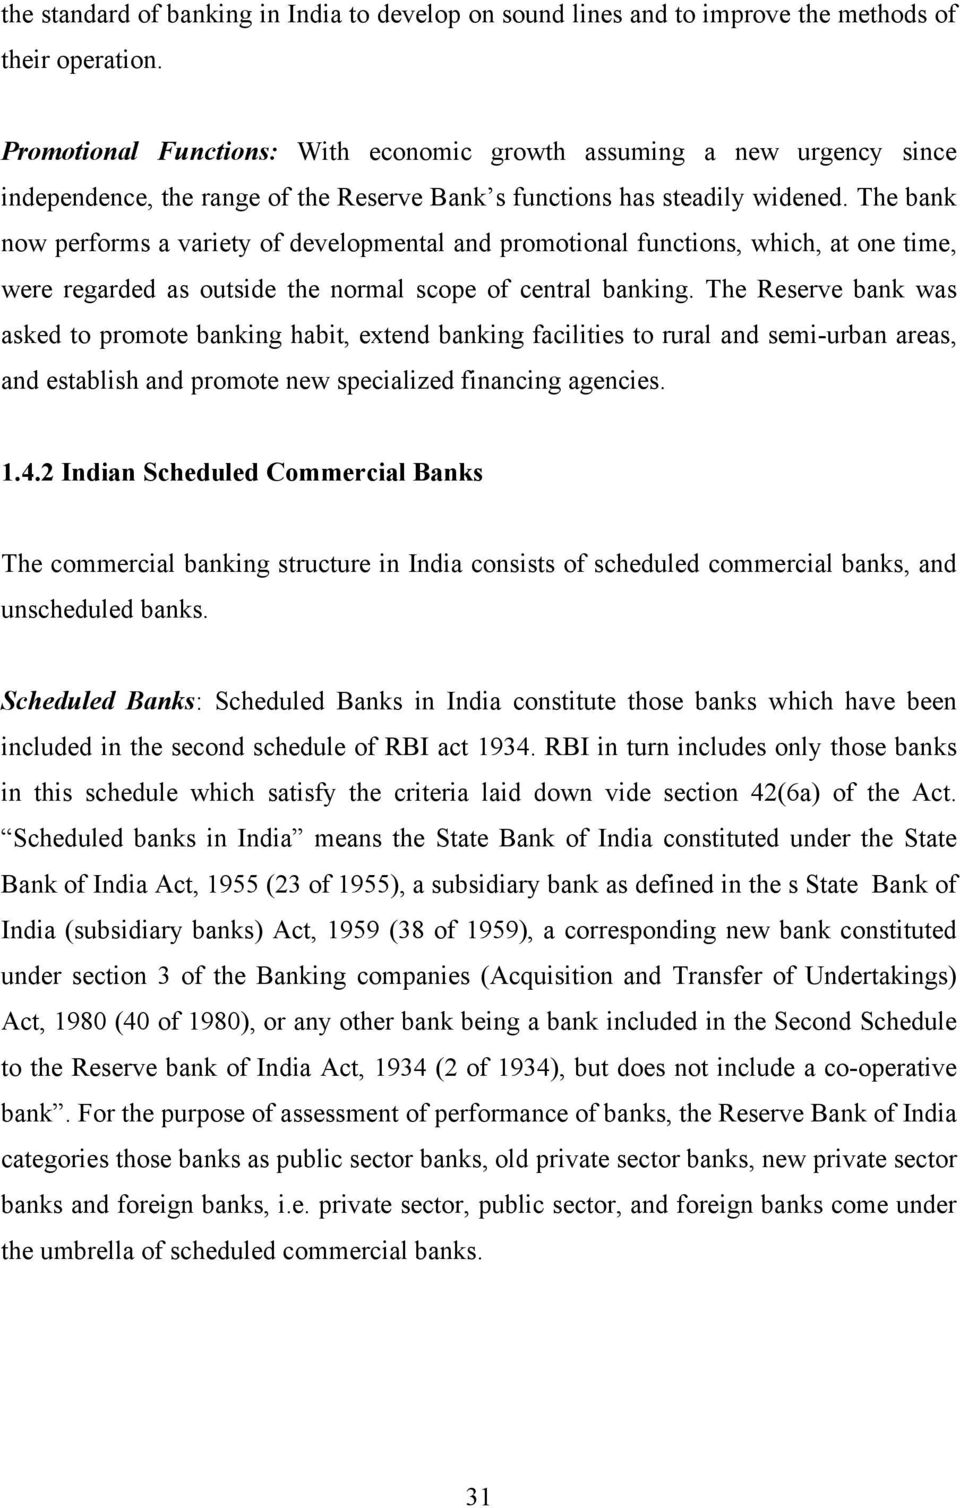 The bank now performs a variety of developmental and promotional functions, which, at one time, were regarded as outside the normal scope of central banking.